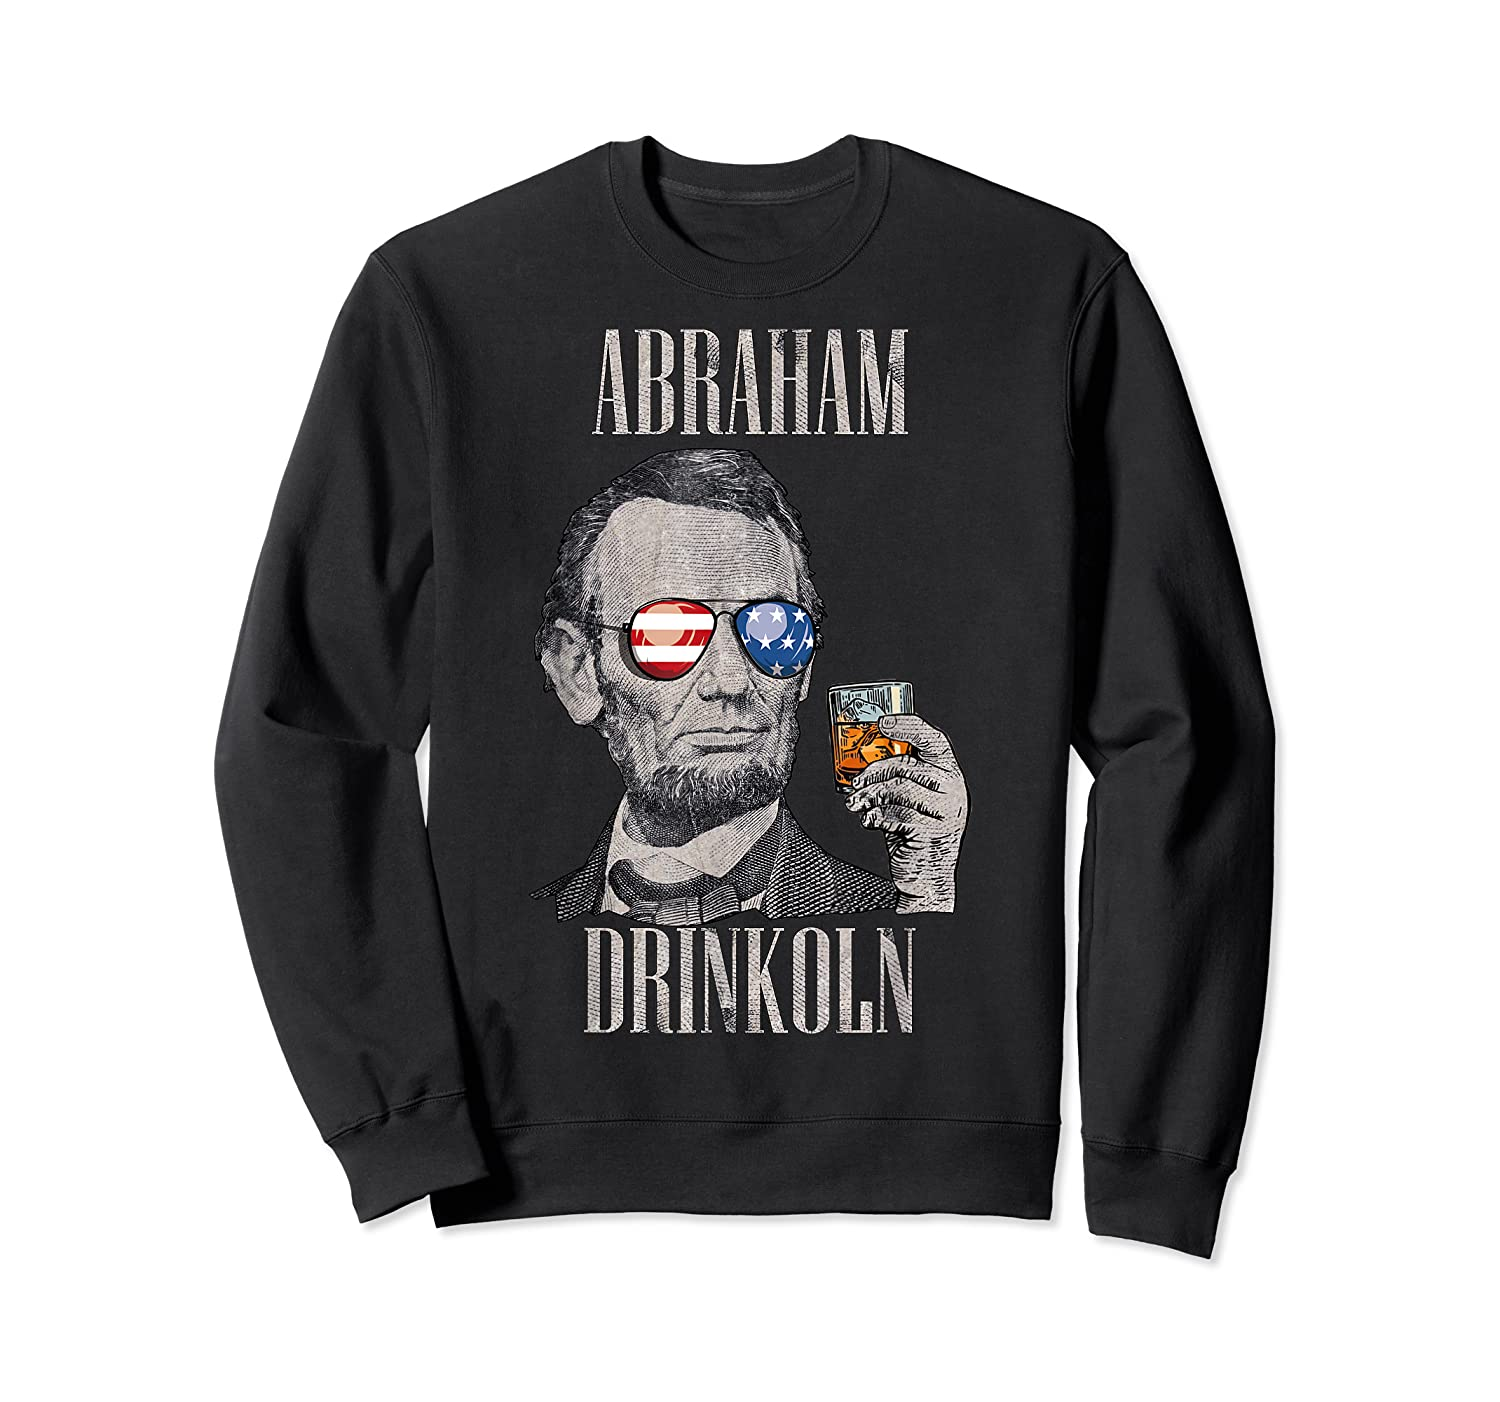 4th Of July Shirts For Abraham Drinkoln Abe Lincoln Tee T Shirt Crewneck Sweater